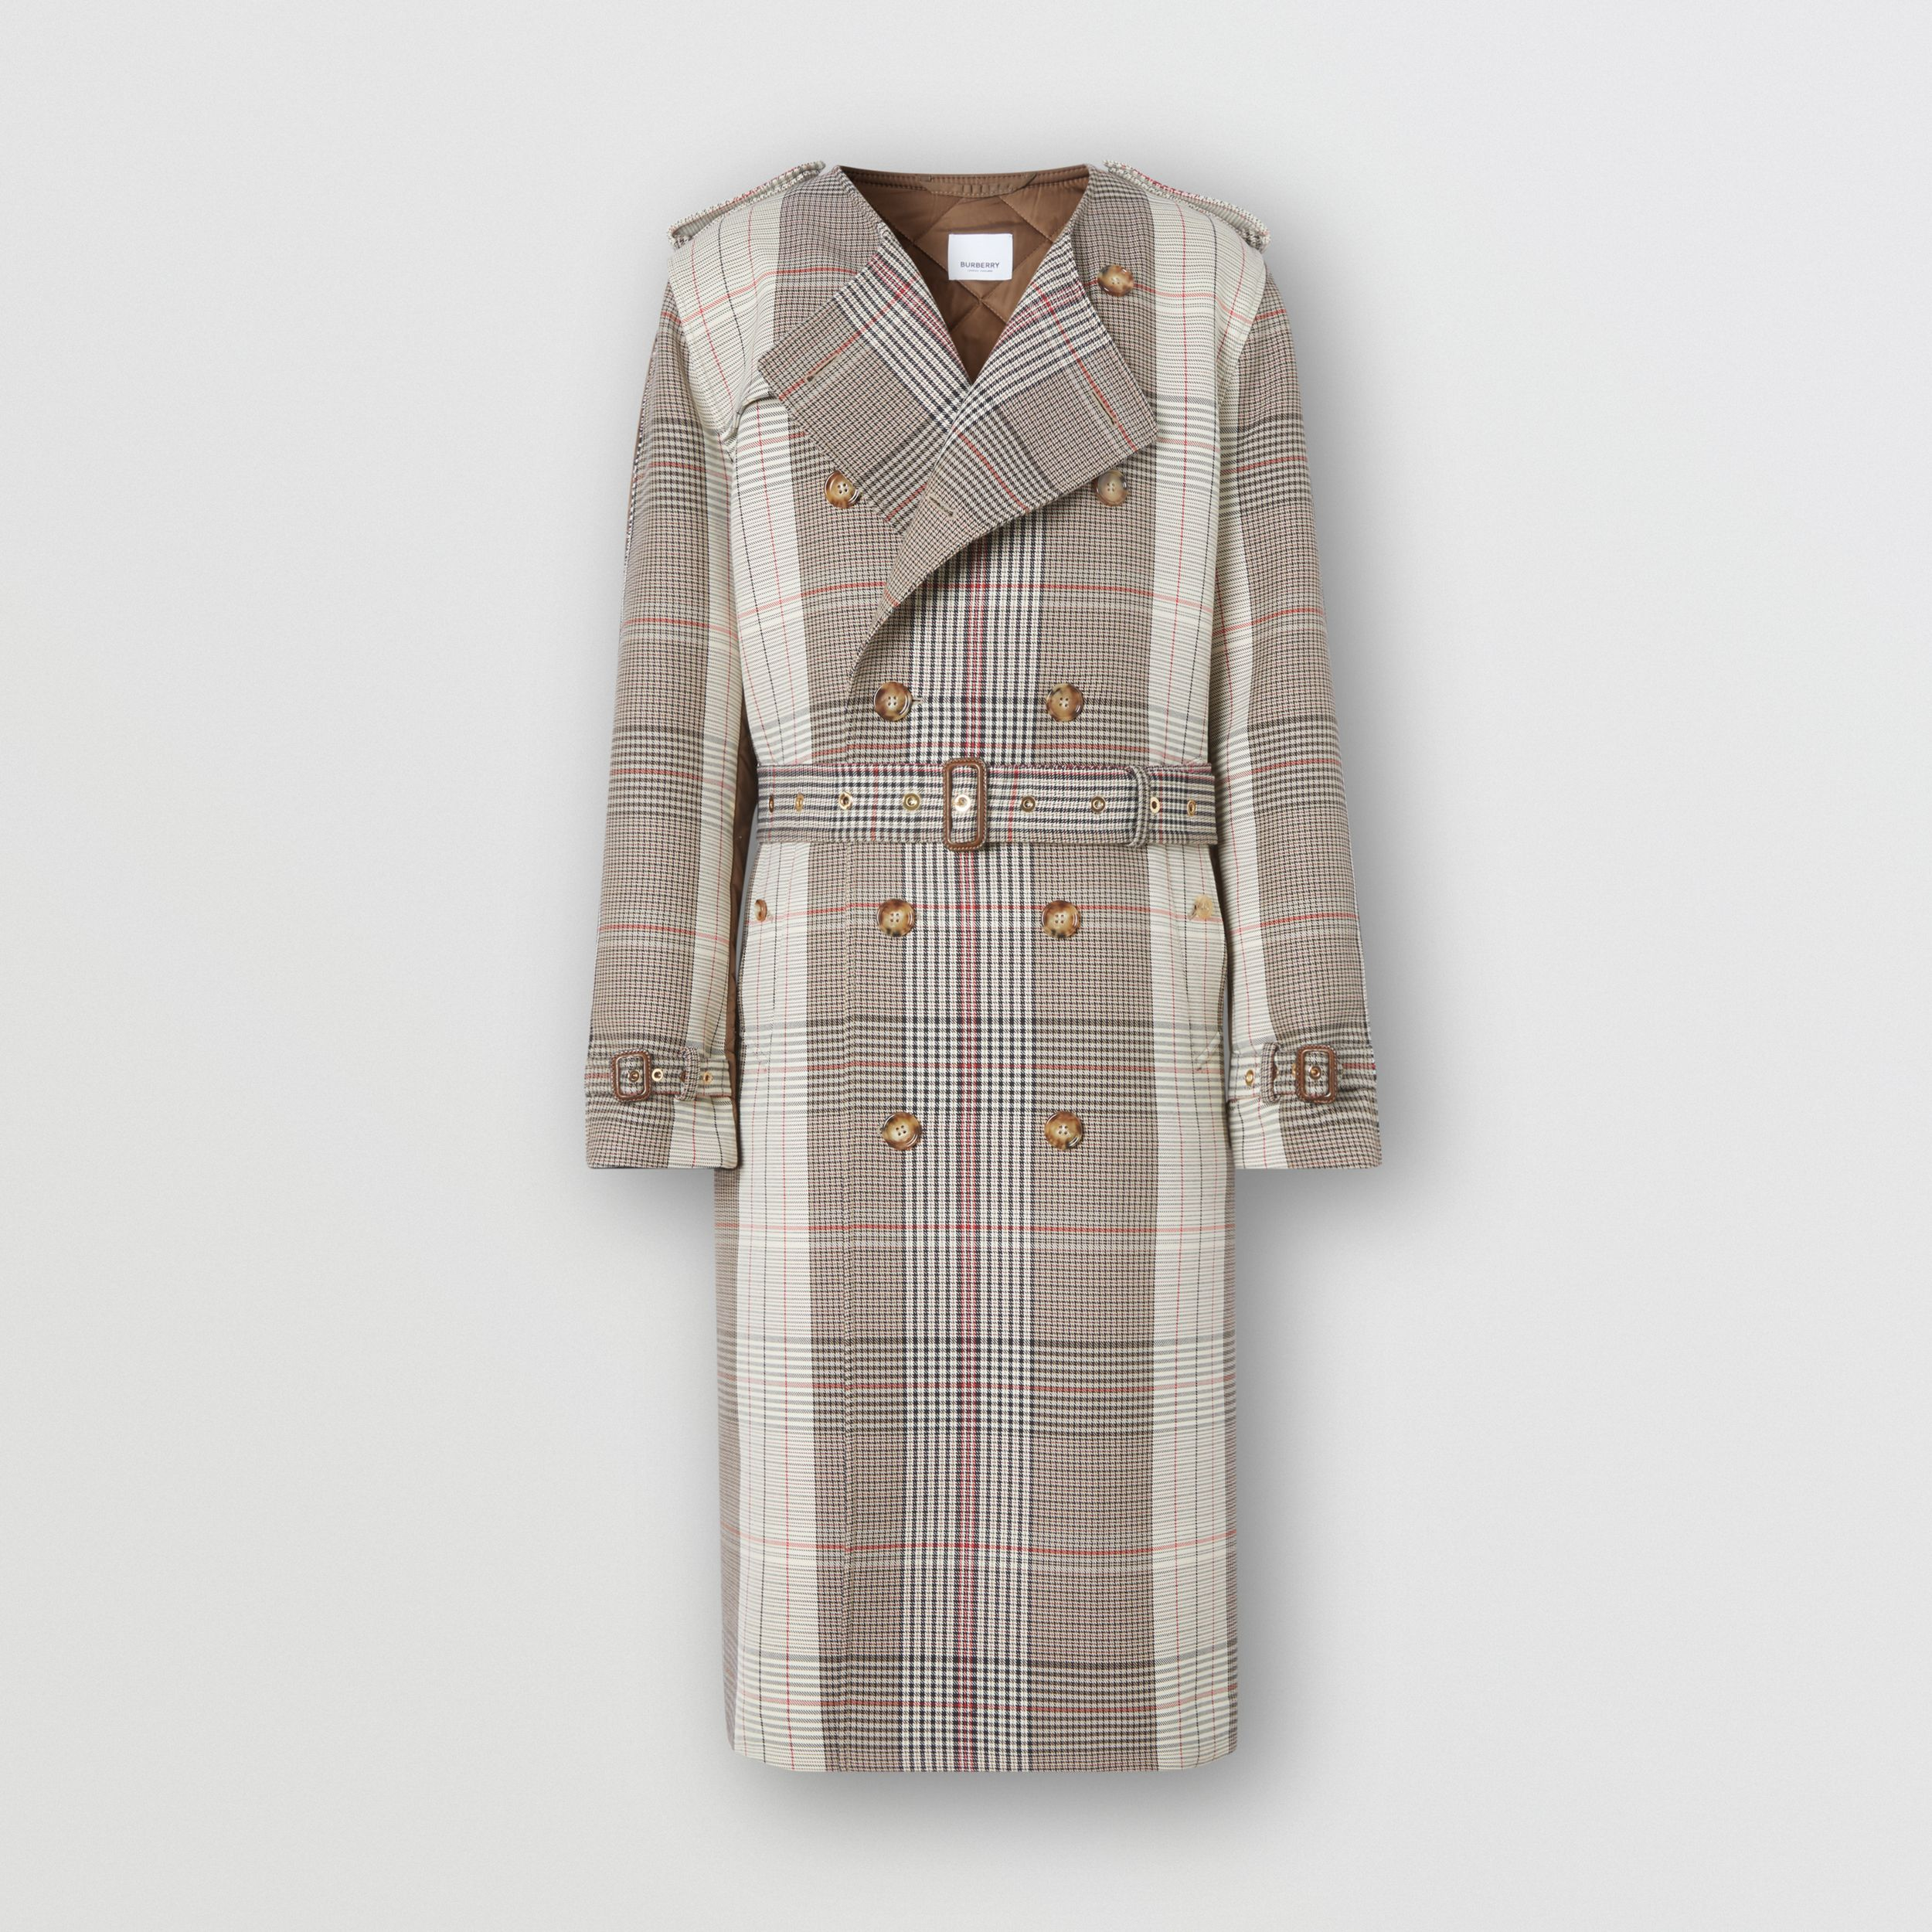 Quilted Panel Check Wool Cotton Trench Coat in Beige | Burberry - 4